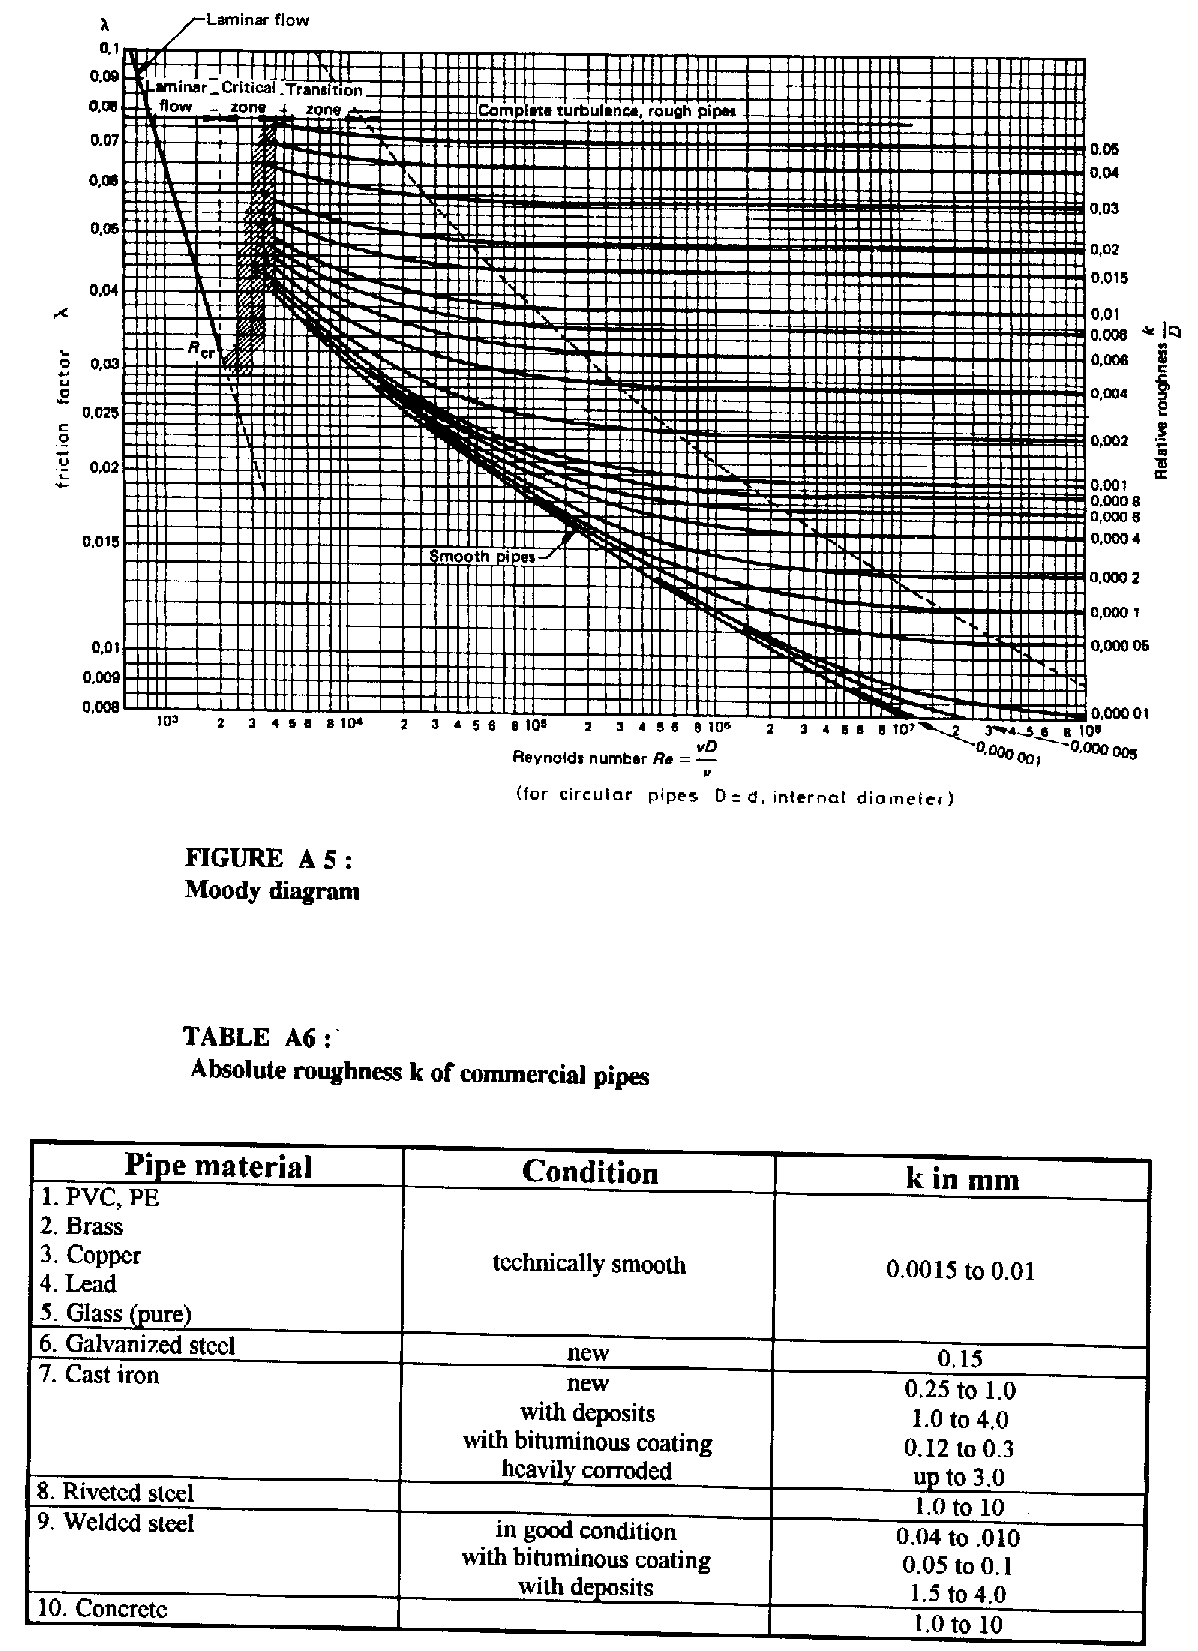 Manual on pumps used as turbines appendix d working diagrams ccuart Images